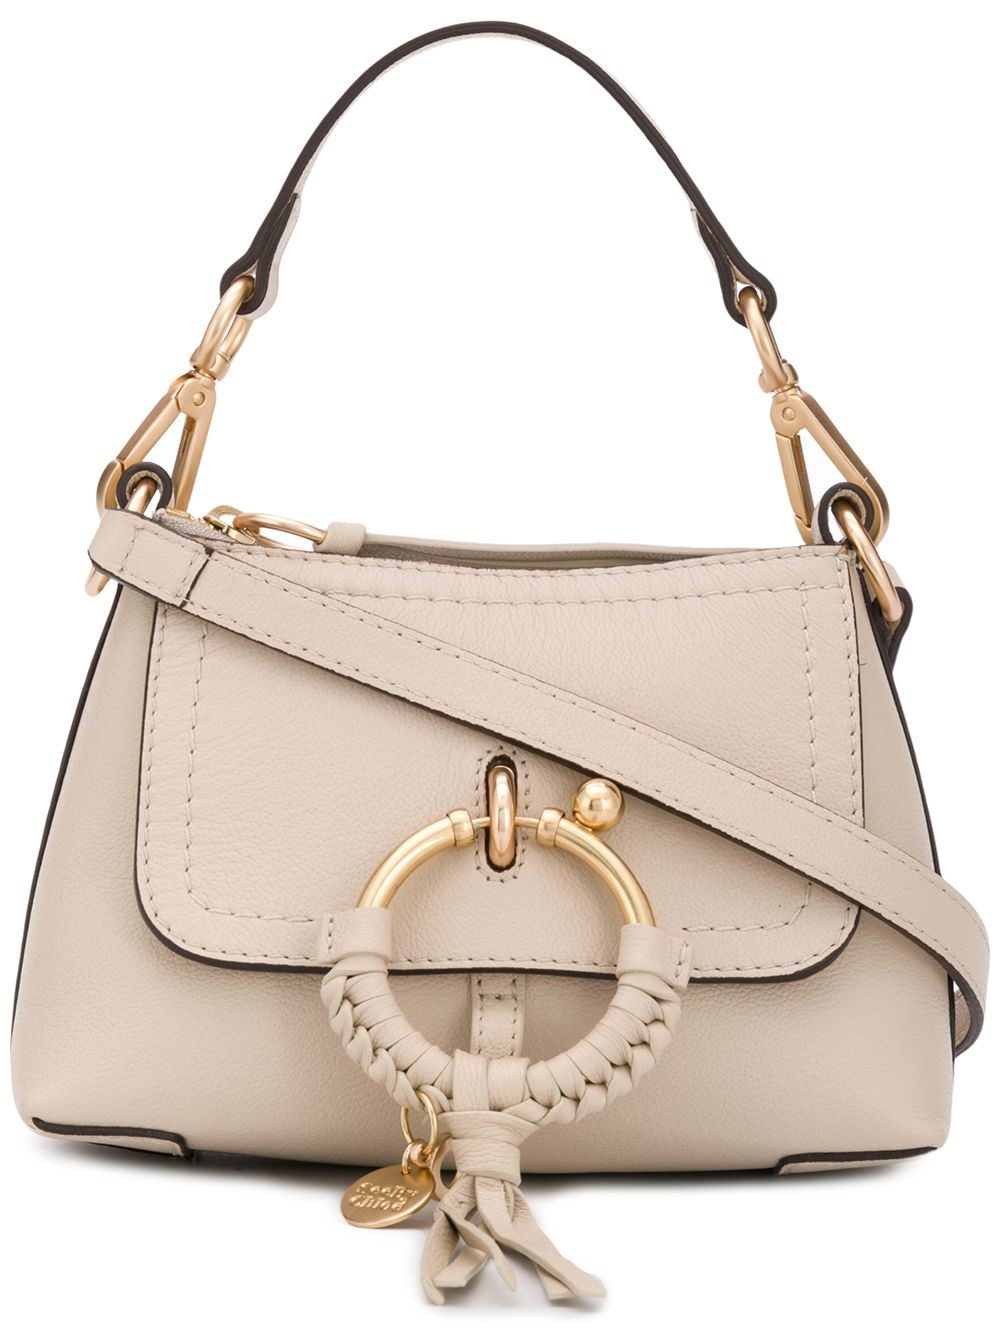 e460d234c9c see by chloe` SHOULDER BAG available on montiboutique.com - 28329